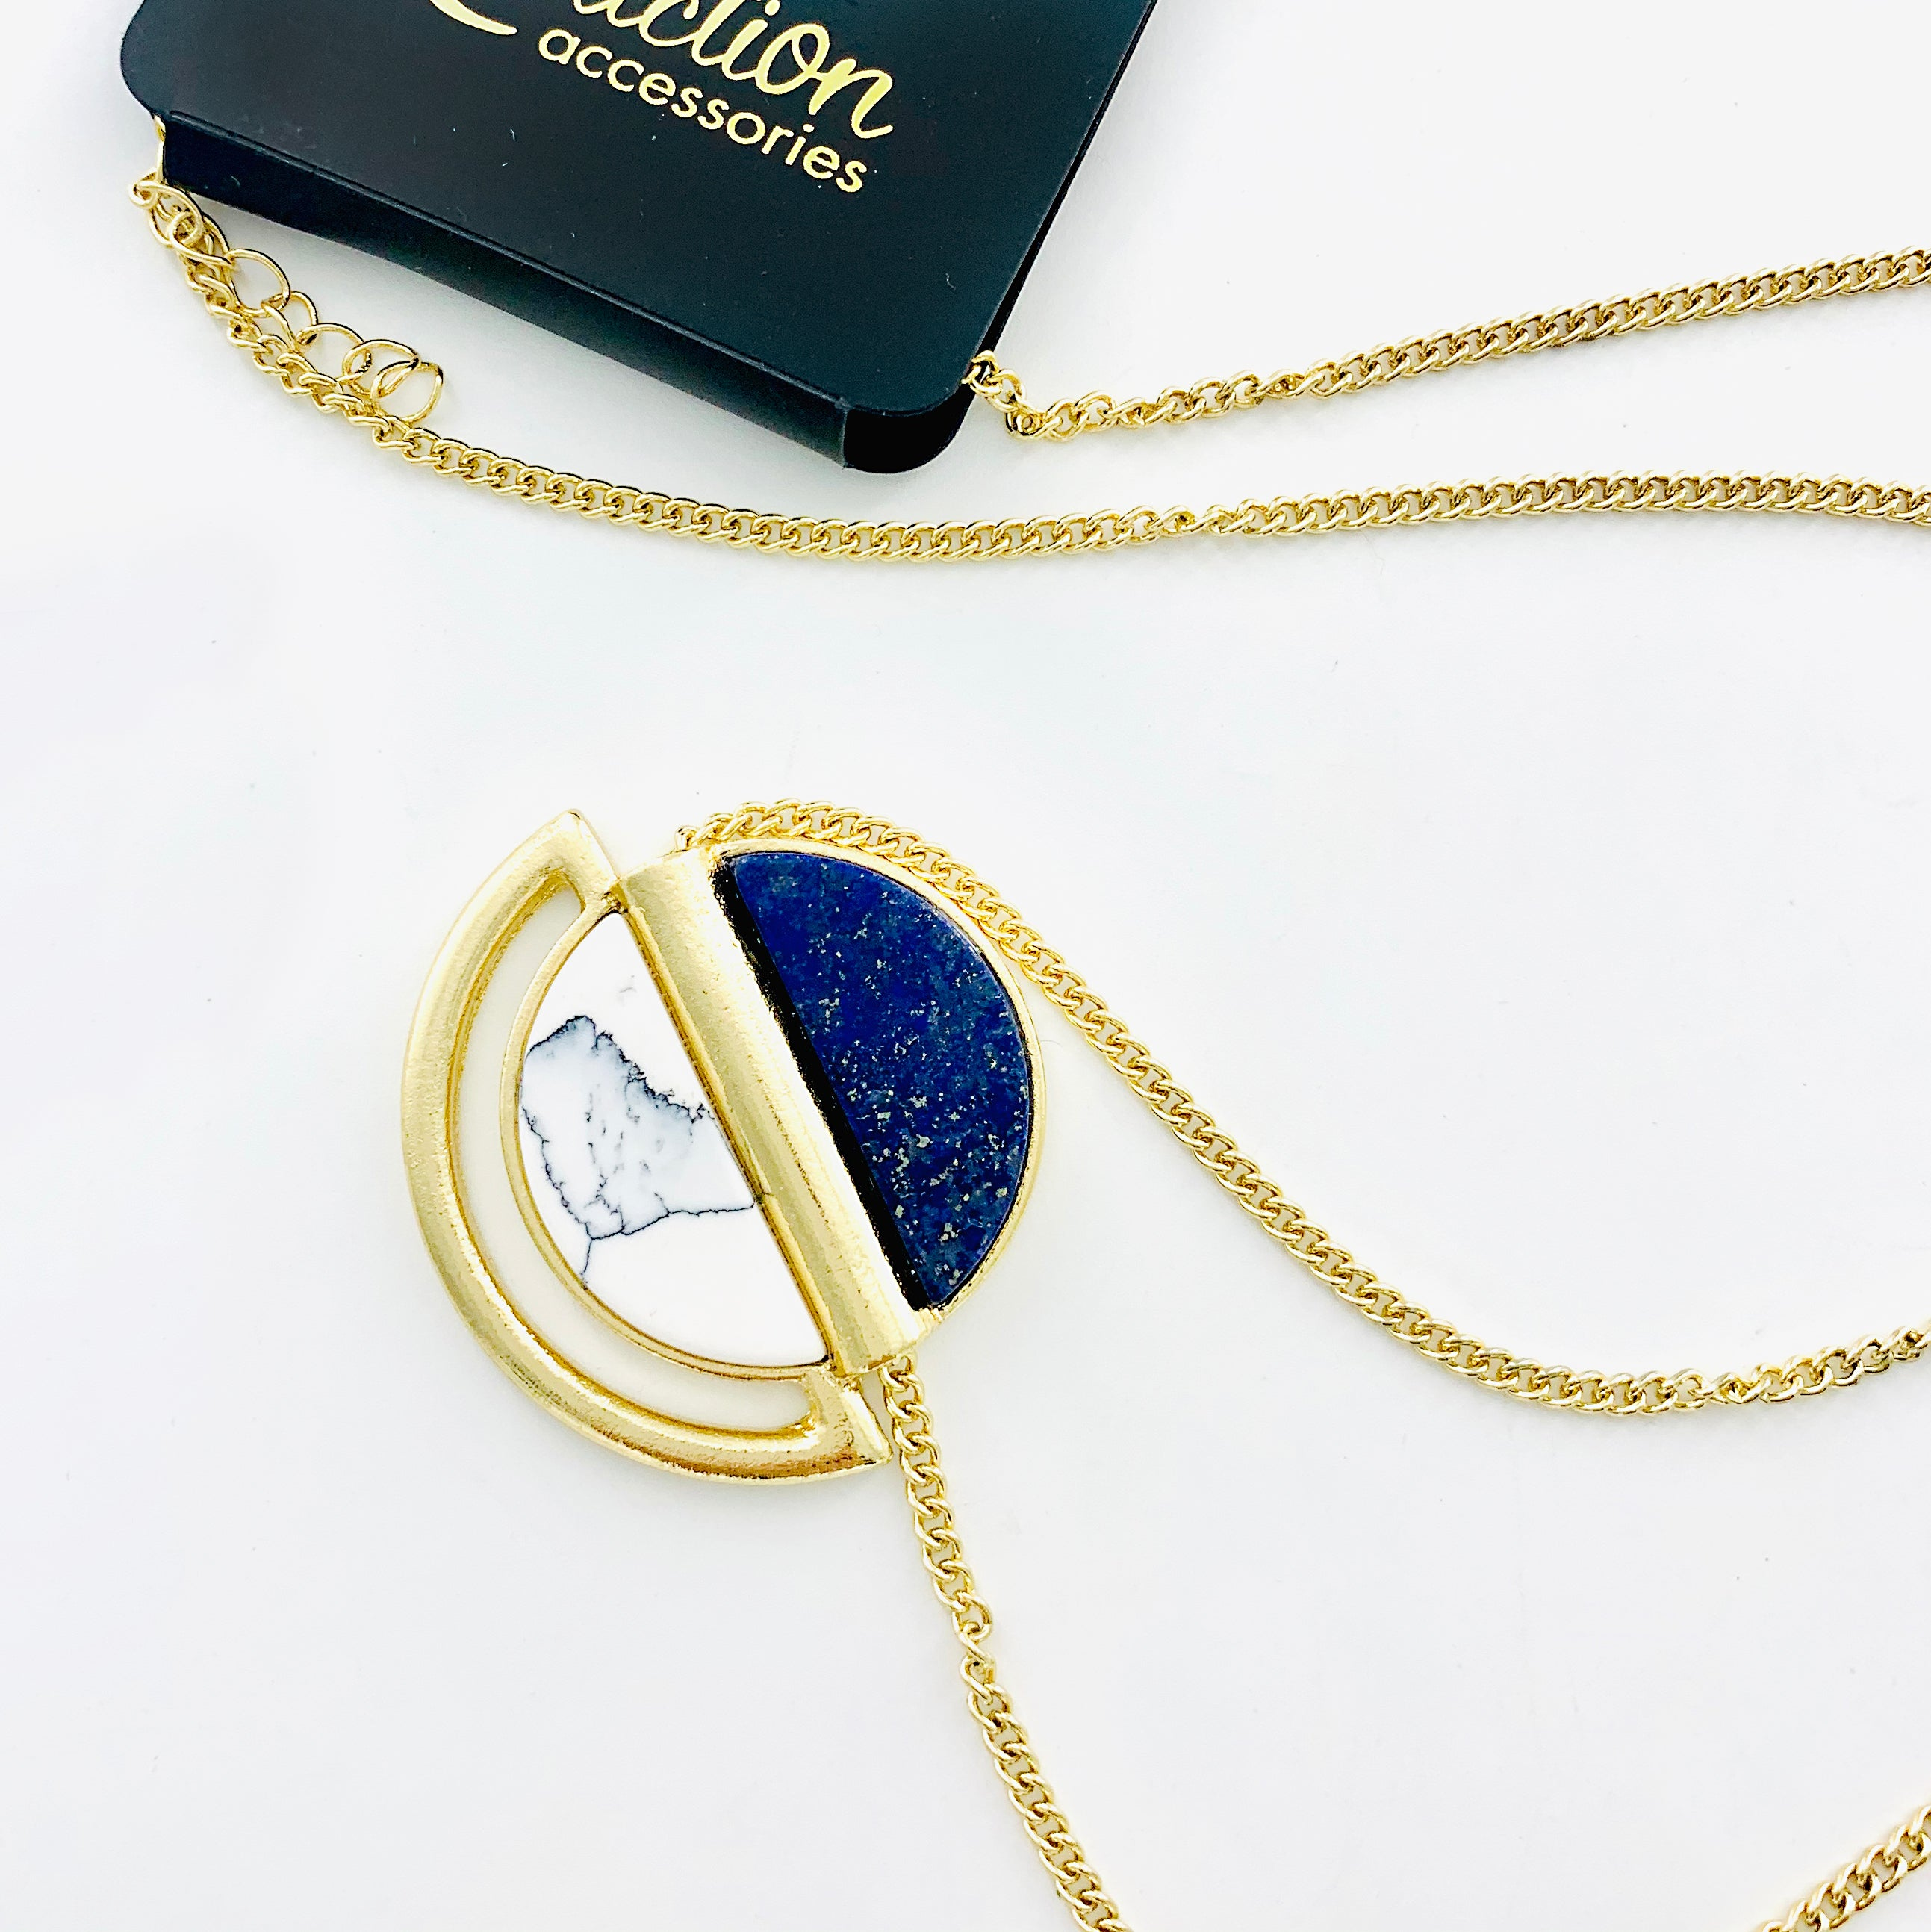 Necklace - Dark Blue & Marble Pendant on Gold Chain